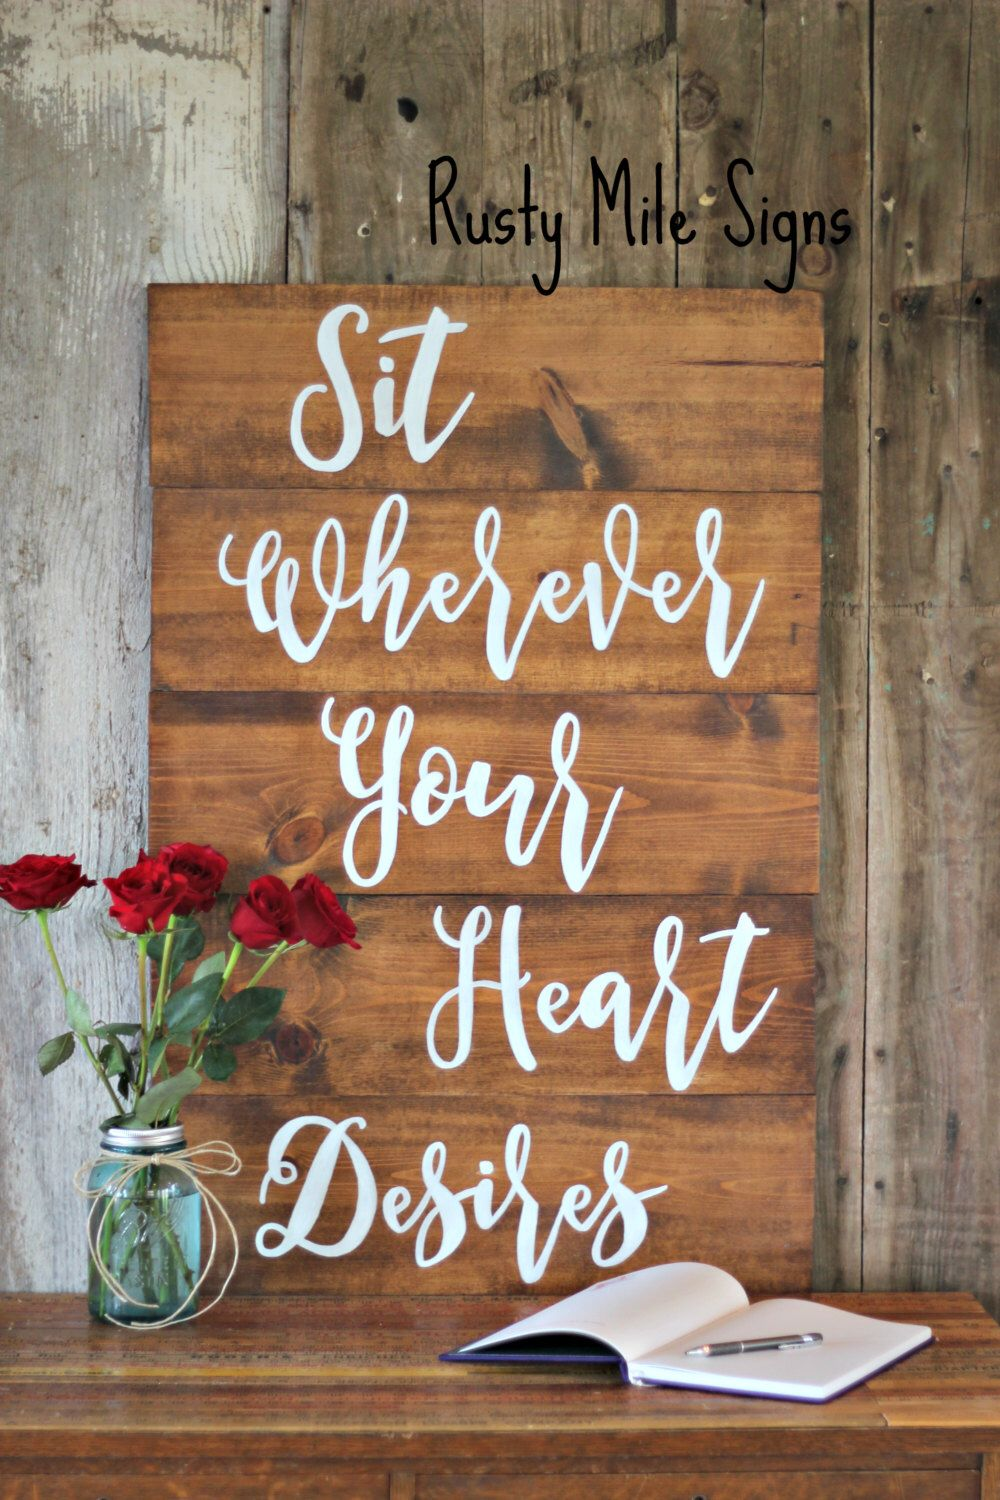 Wedding Signs Seating, Wedding Seating Sign, Customizable Wedding Sign, Sit wherever your heart desires, Rustic Wedding Sign by RustyMileSigns on Etsy https://www.etsy.com/listing/277875446/wedding-signs-seating-wedding-seating